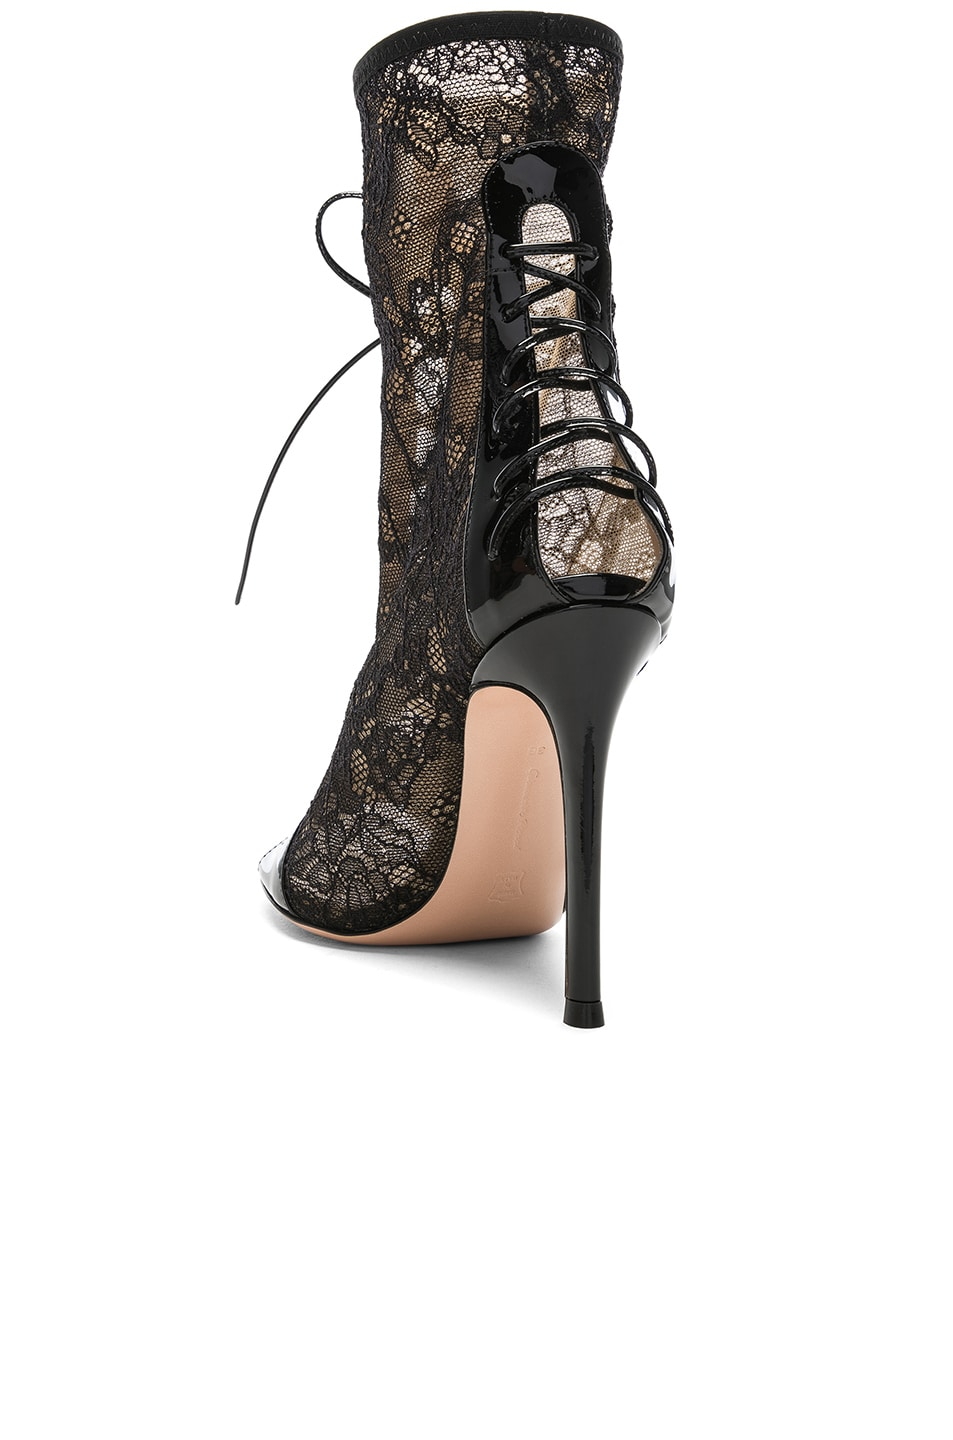 Image 3 of Gianvito Rossi Lurex & Patent Loulou Lace Up Ankle Boots in Black